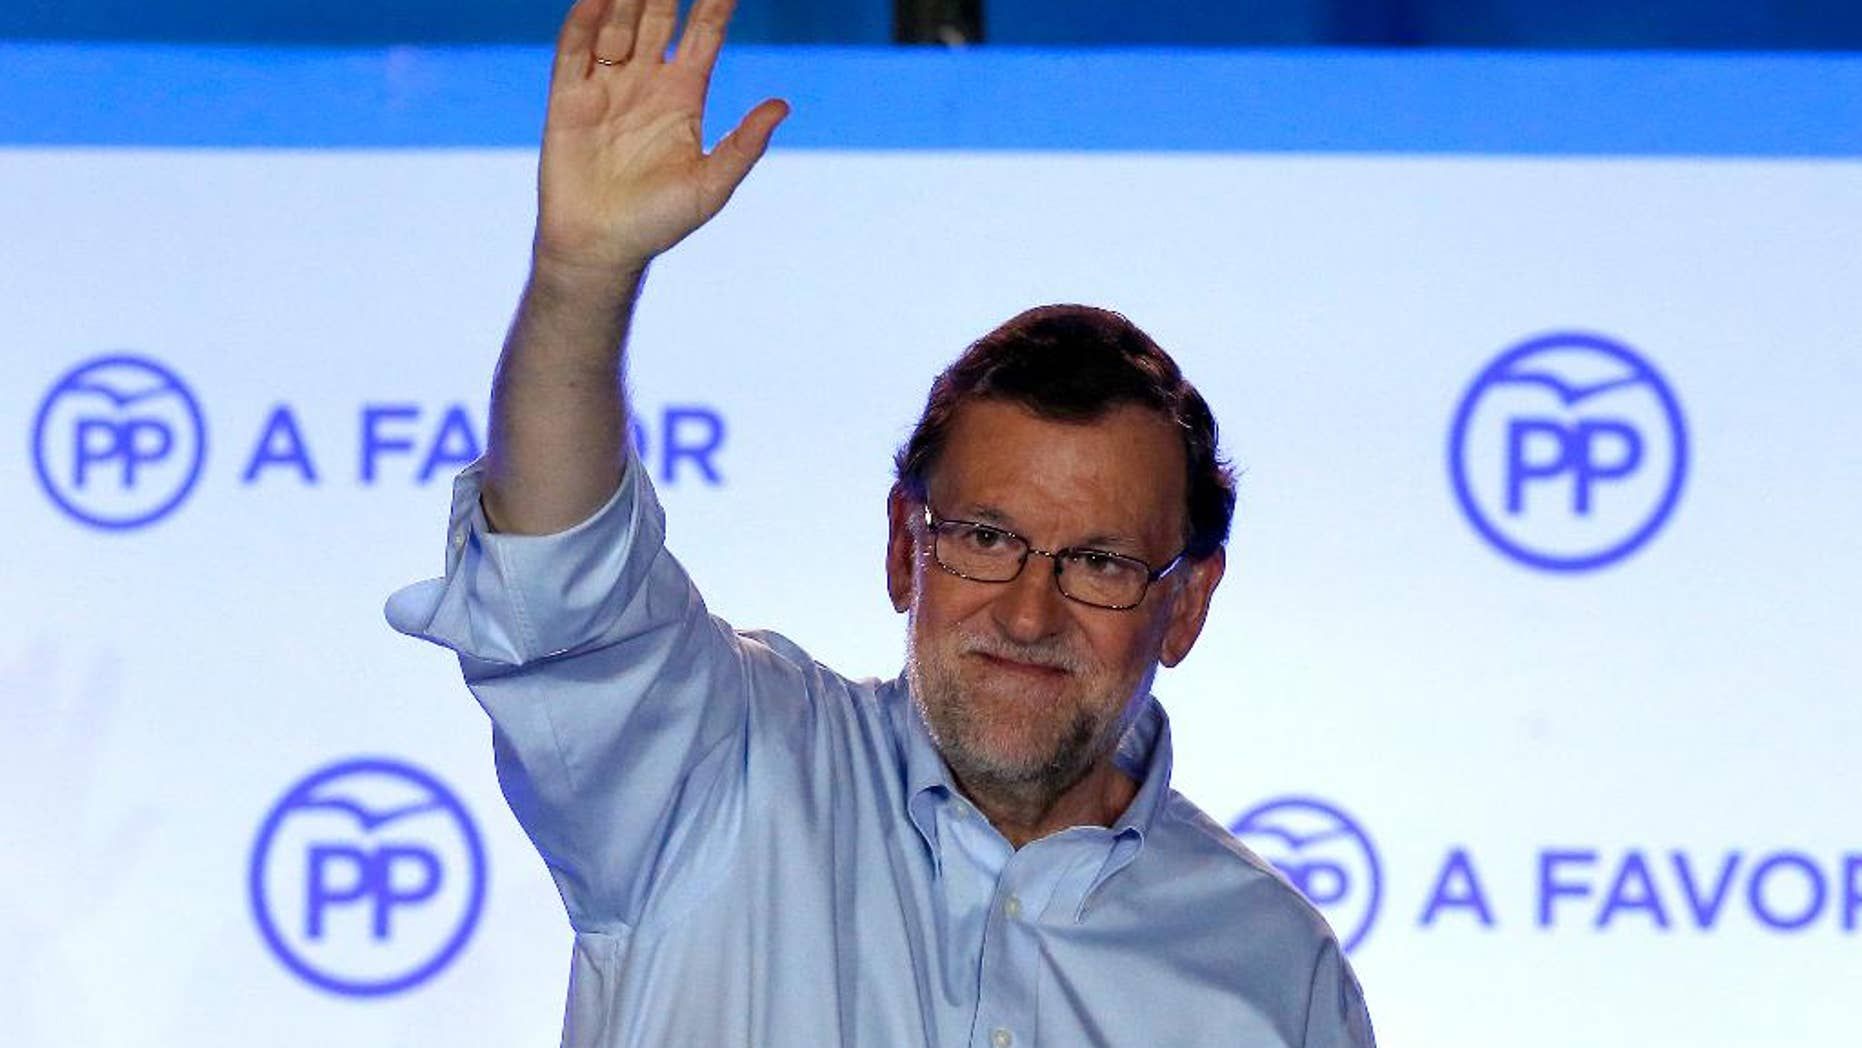 FILE - In this Sunday, June 26, 2016 file photo, Spain's then acting Primer Minister and candidate of Popular Party Mariano Rajoy, waves to his supporters as he celebrates the results of the party during the national elections in Madrid, Spain. Rajoy was re-elected as the leader of the conservative Popular Party for a fourth term on Saturday, Feb. 11, 2017. The 61-year-old Rajoy ran unopposed and won with 95% of the vote at the party congress in Madrid. (AP Photo/Daniel Ochoa de Olza, File)